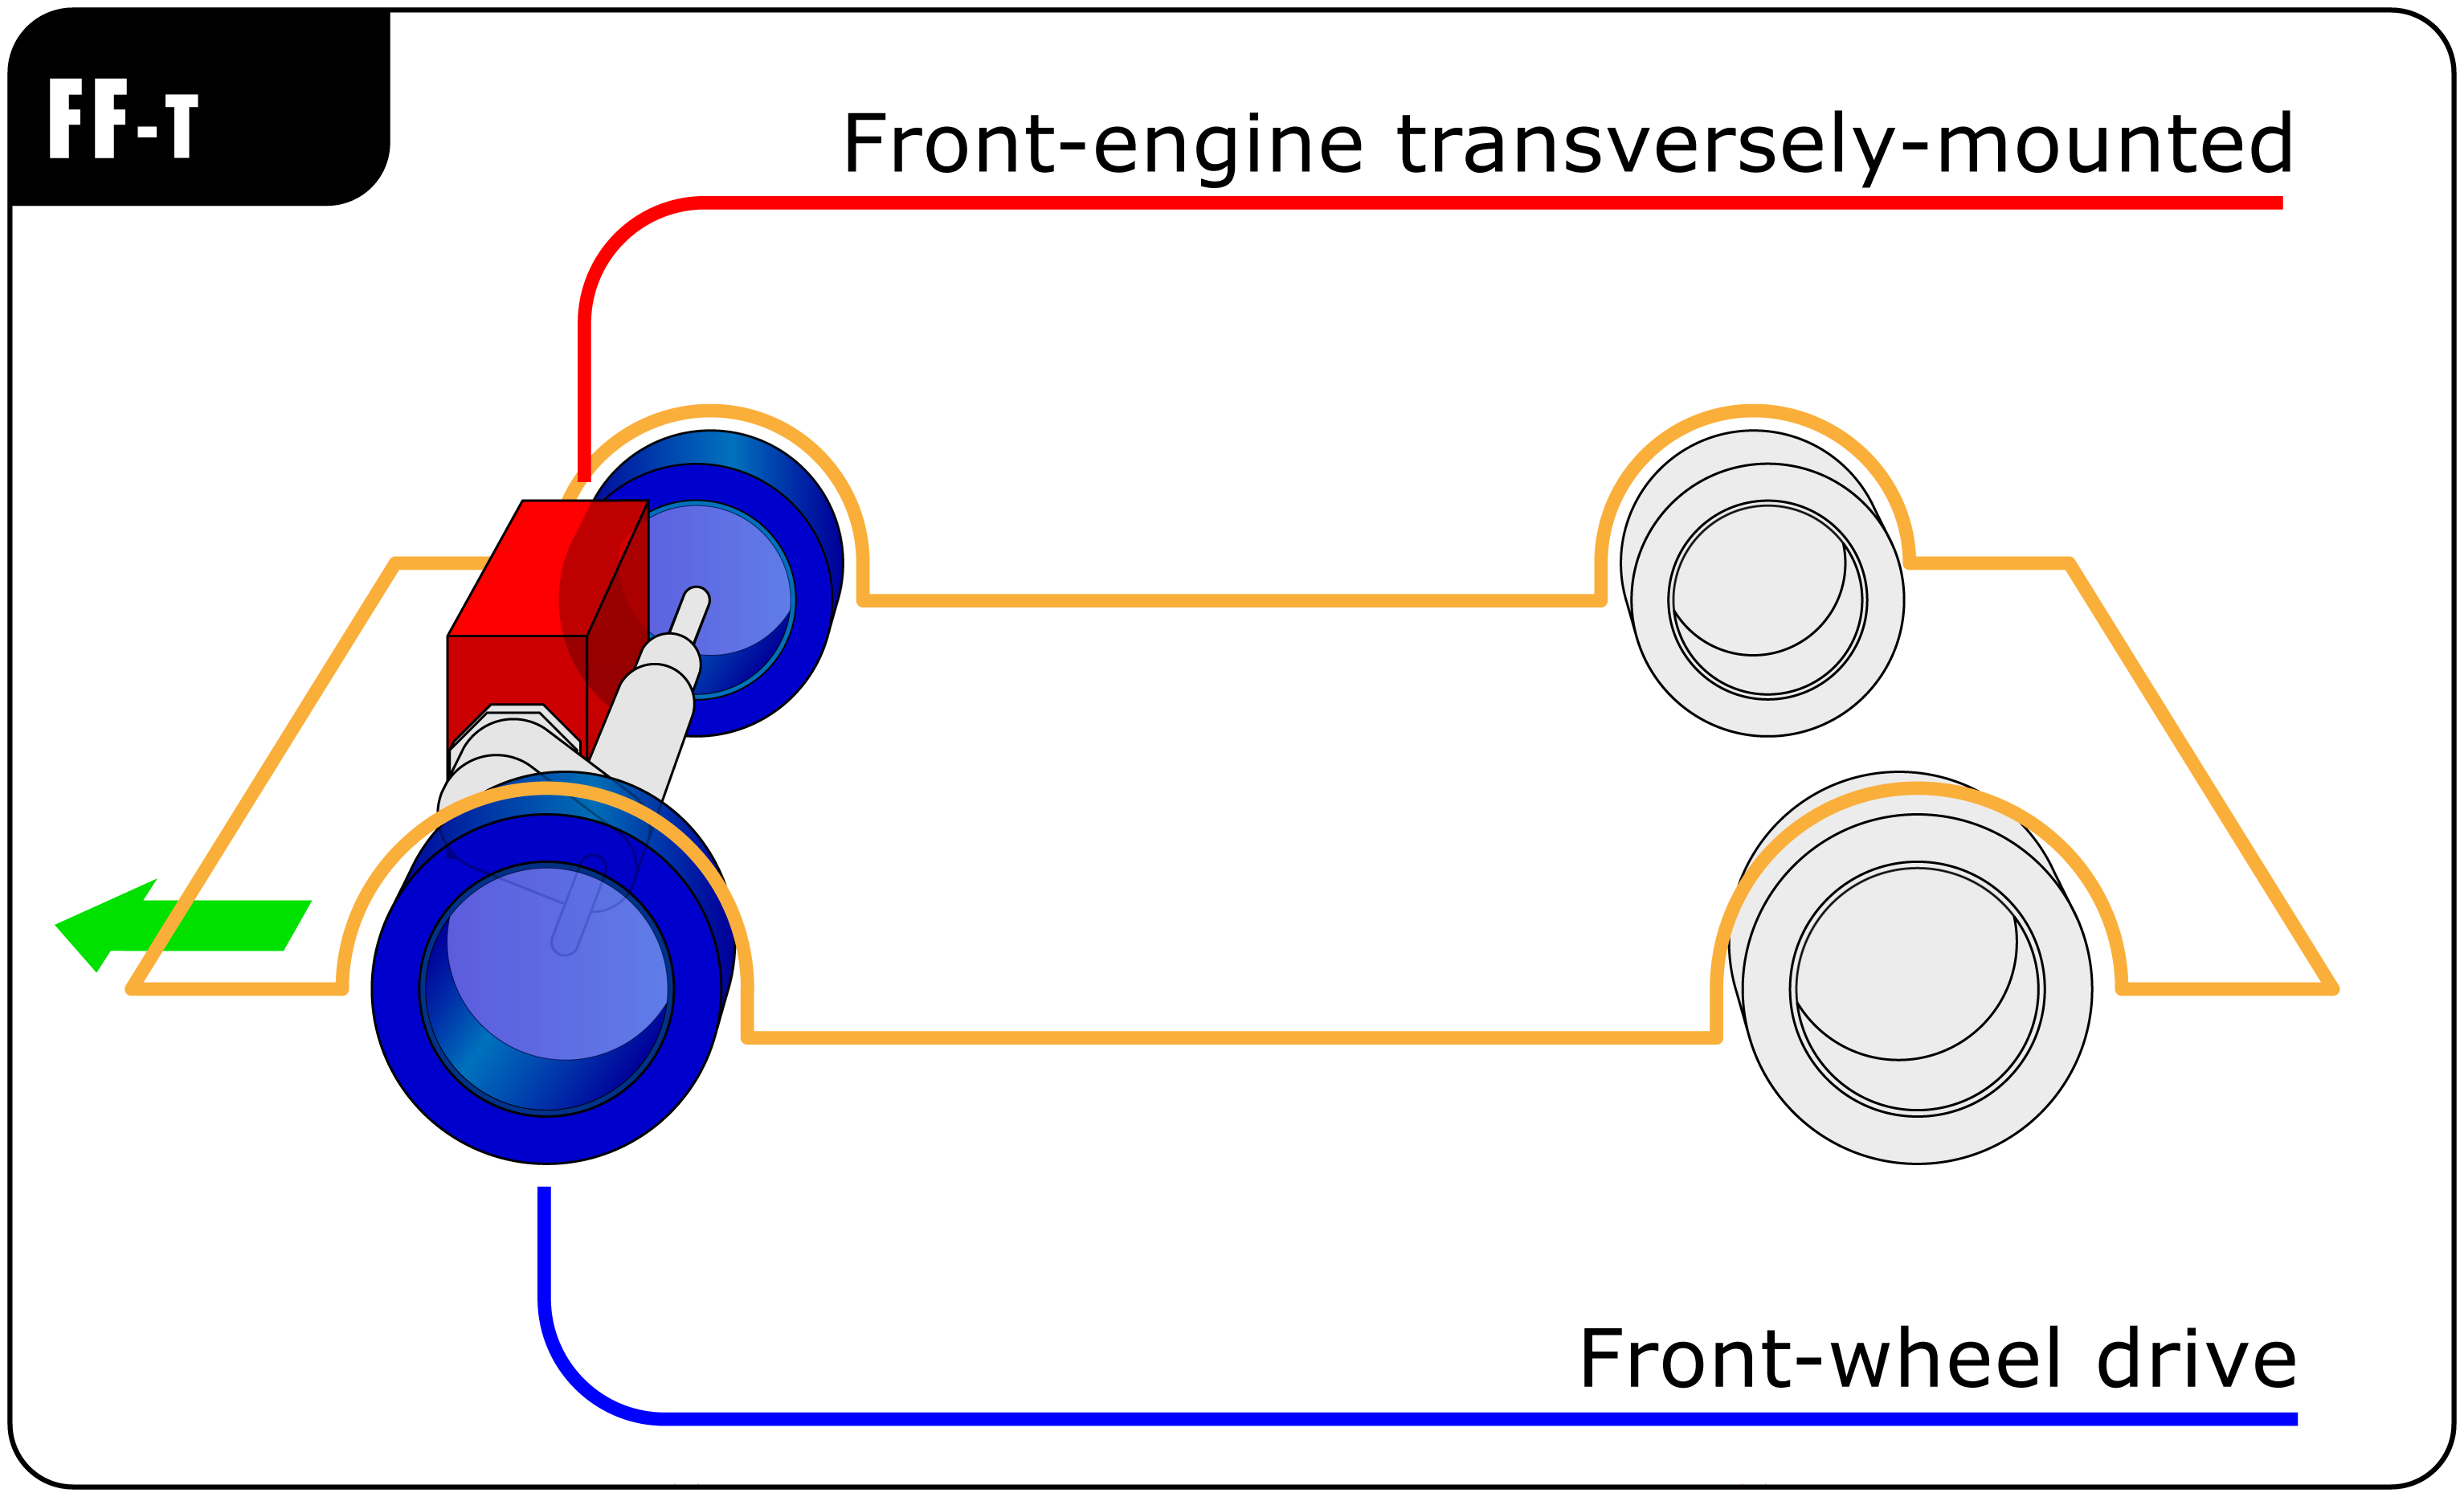 File:Automotive diagrams 10 En.png - Wikimedia Commons | Rear Engine Diagram |  | - Wikimedia Commons